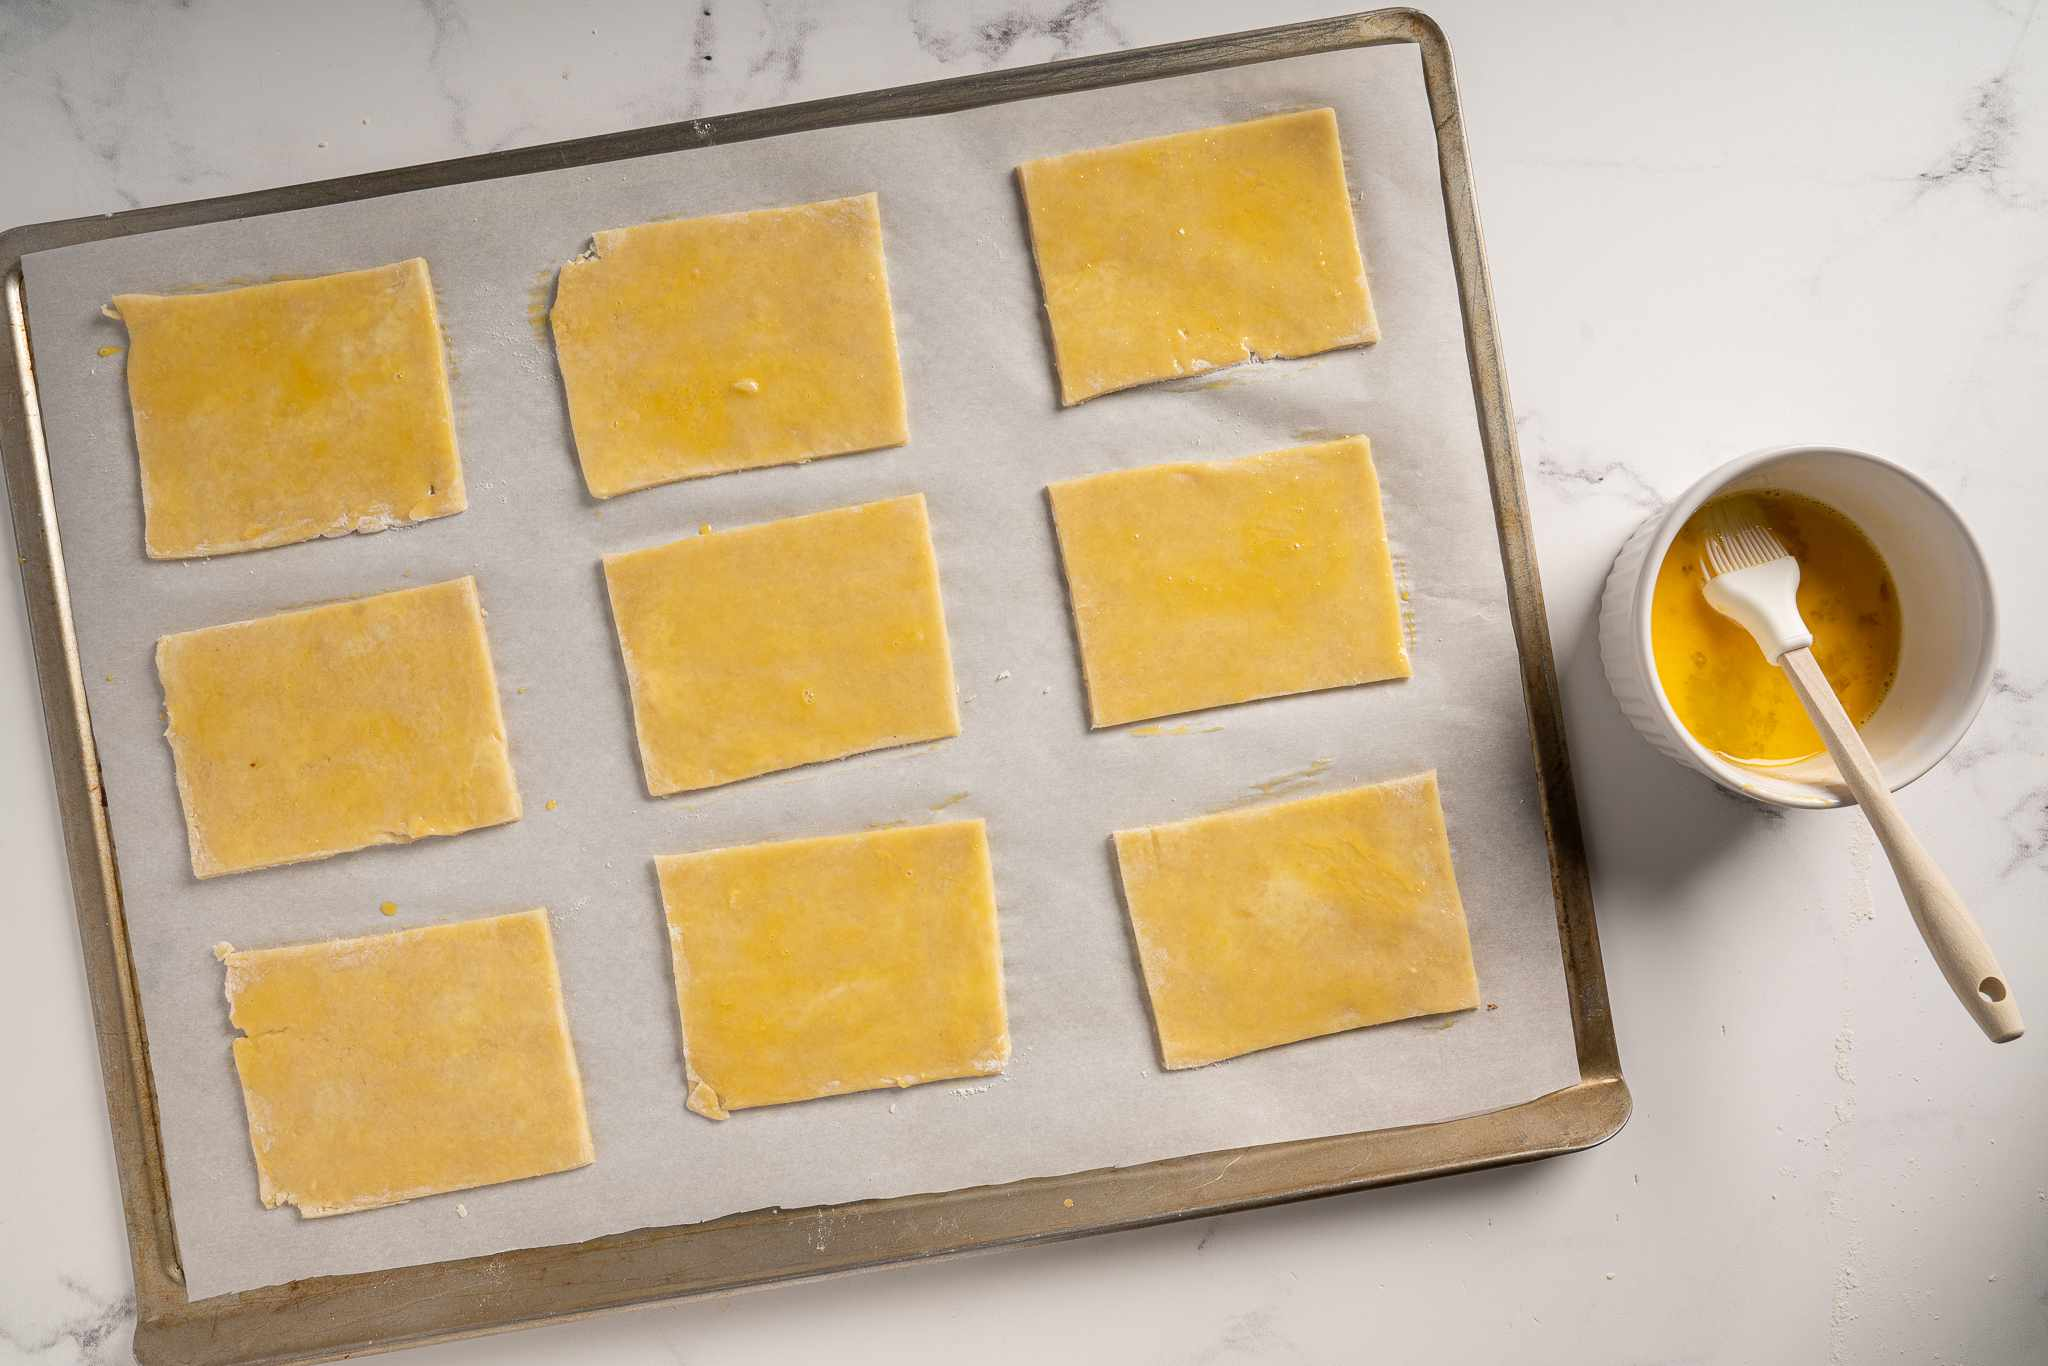 Pastry rectangles on a parchment-lined baking sheet brushed with egg